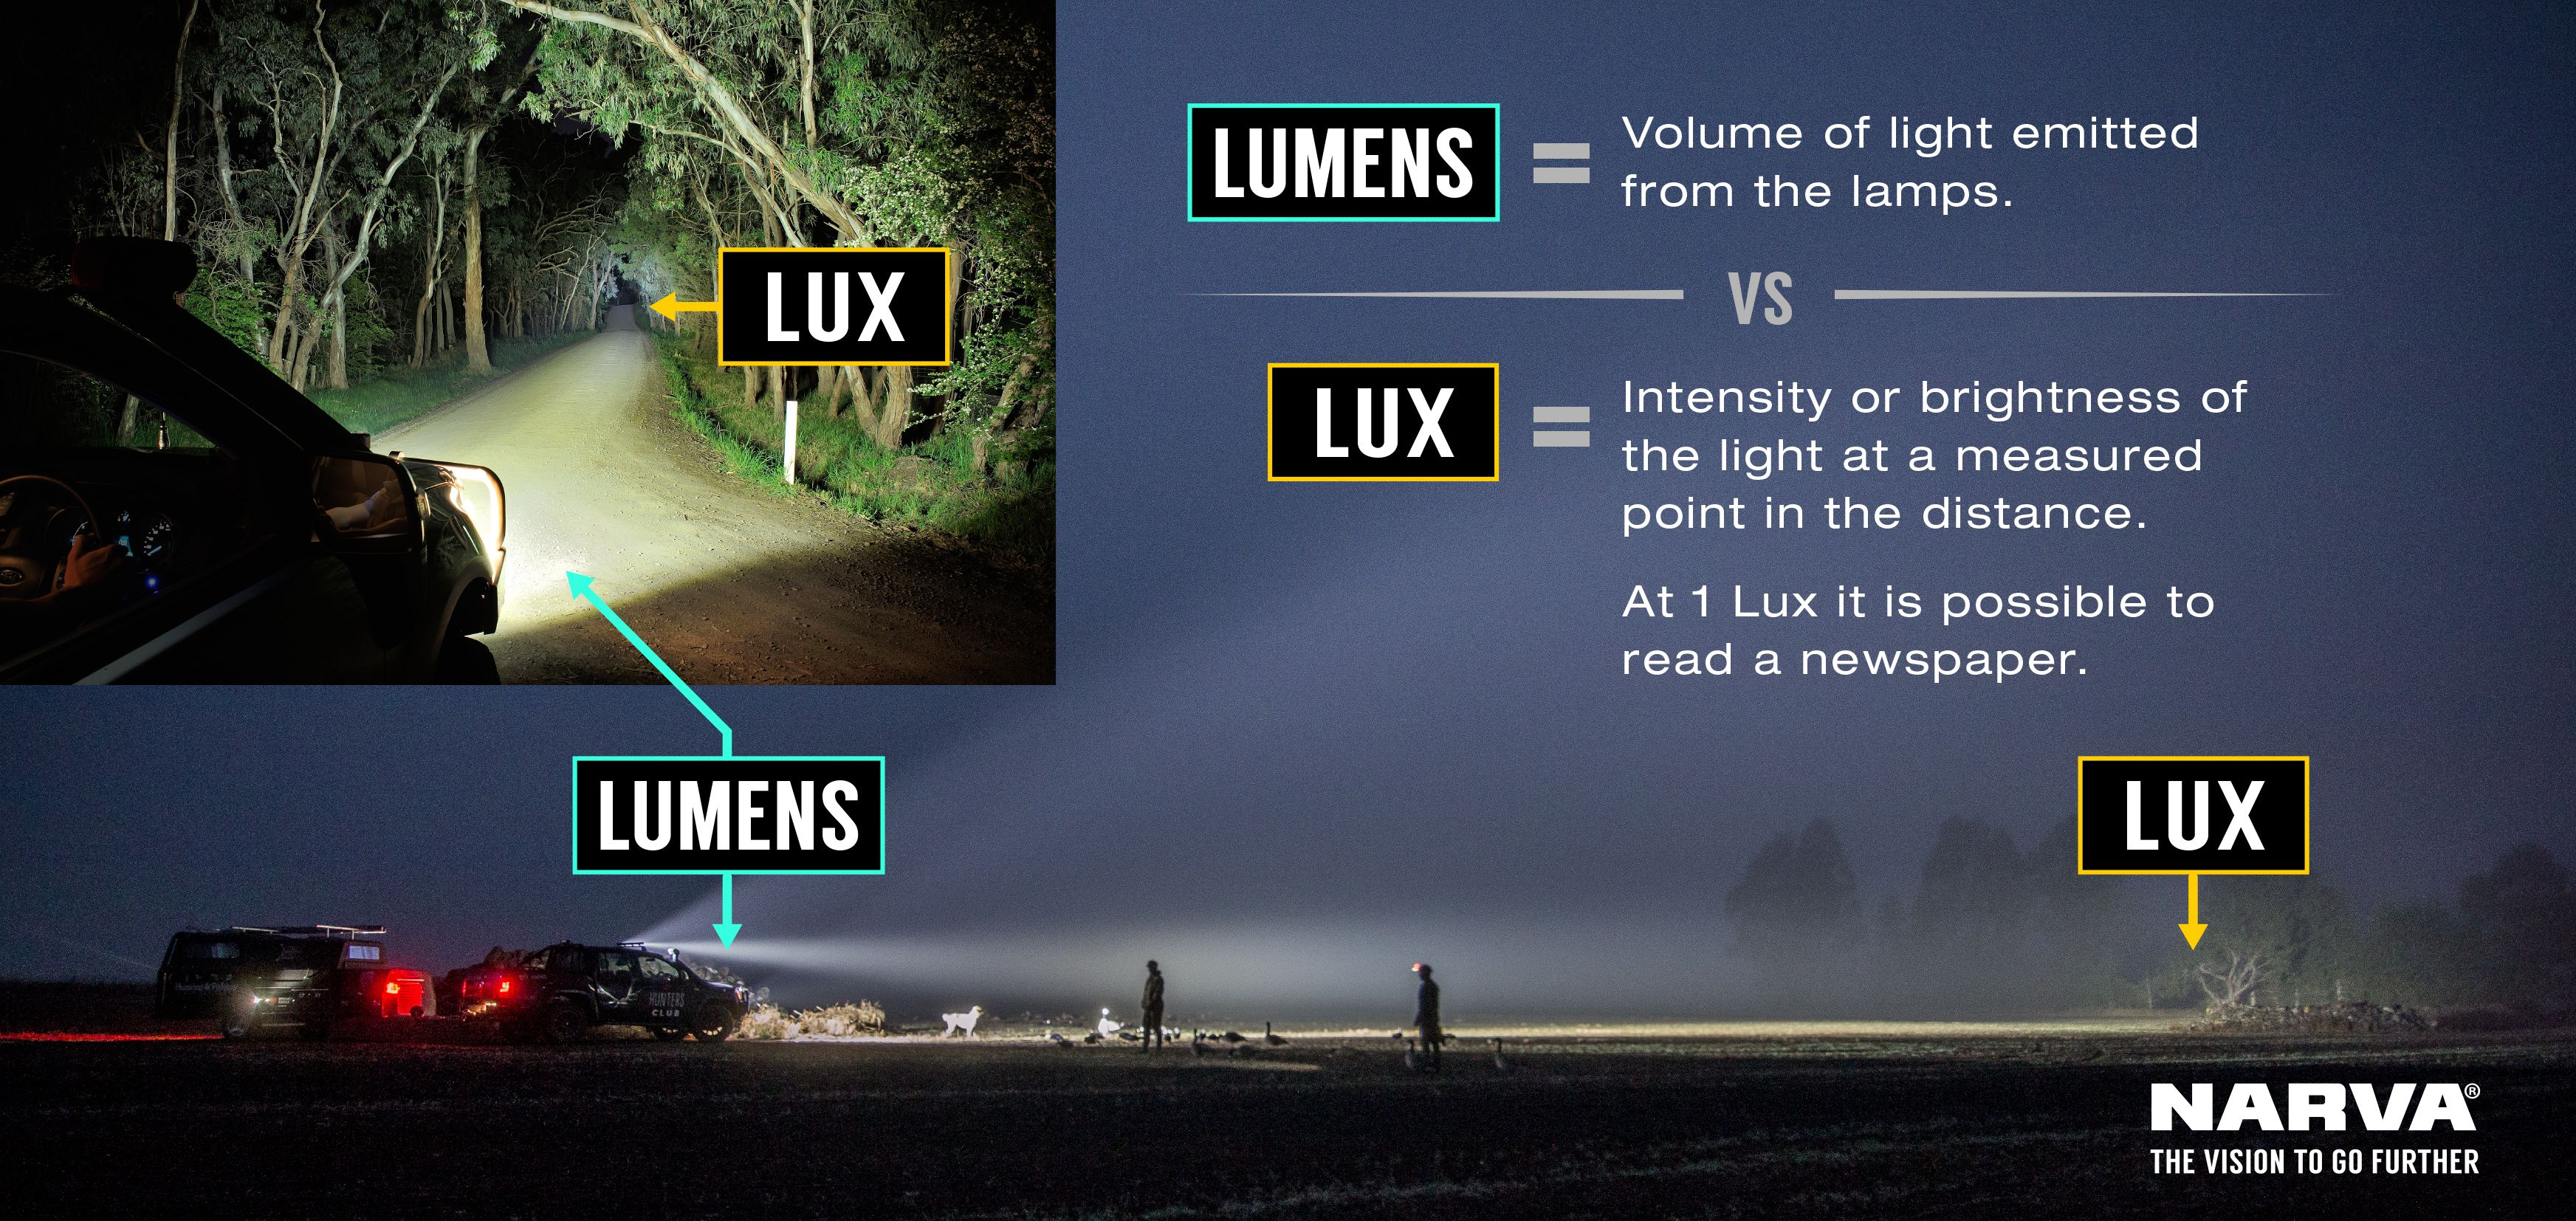 Definition of Lux vs Lumens